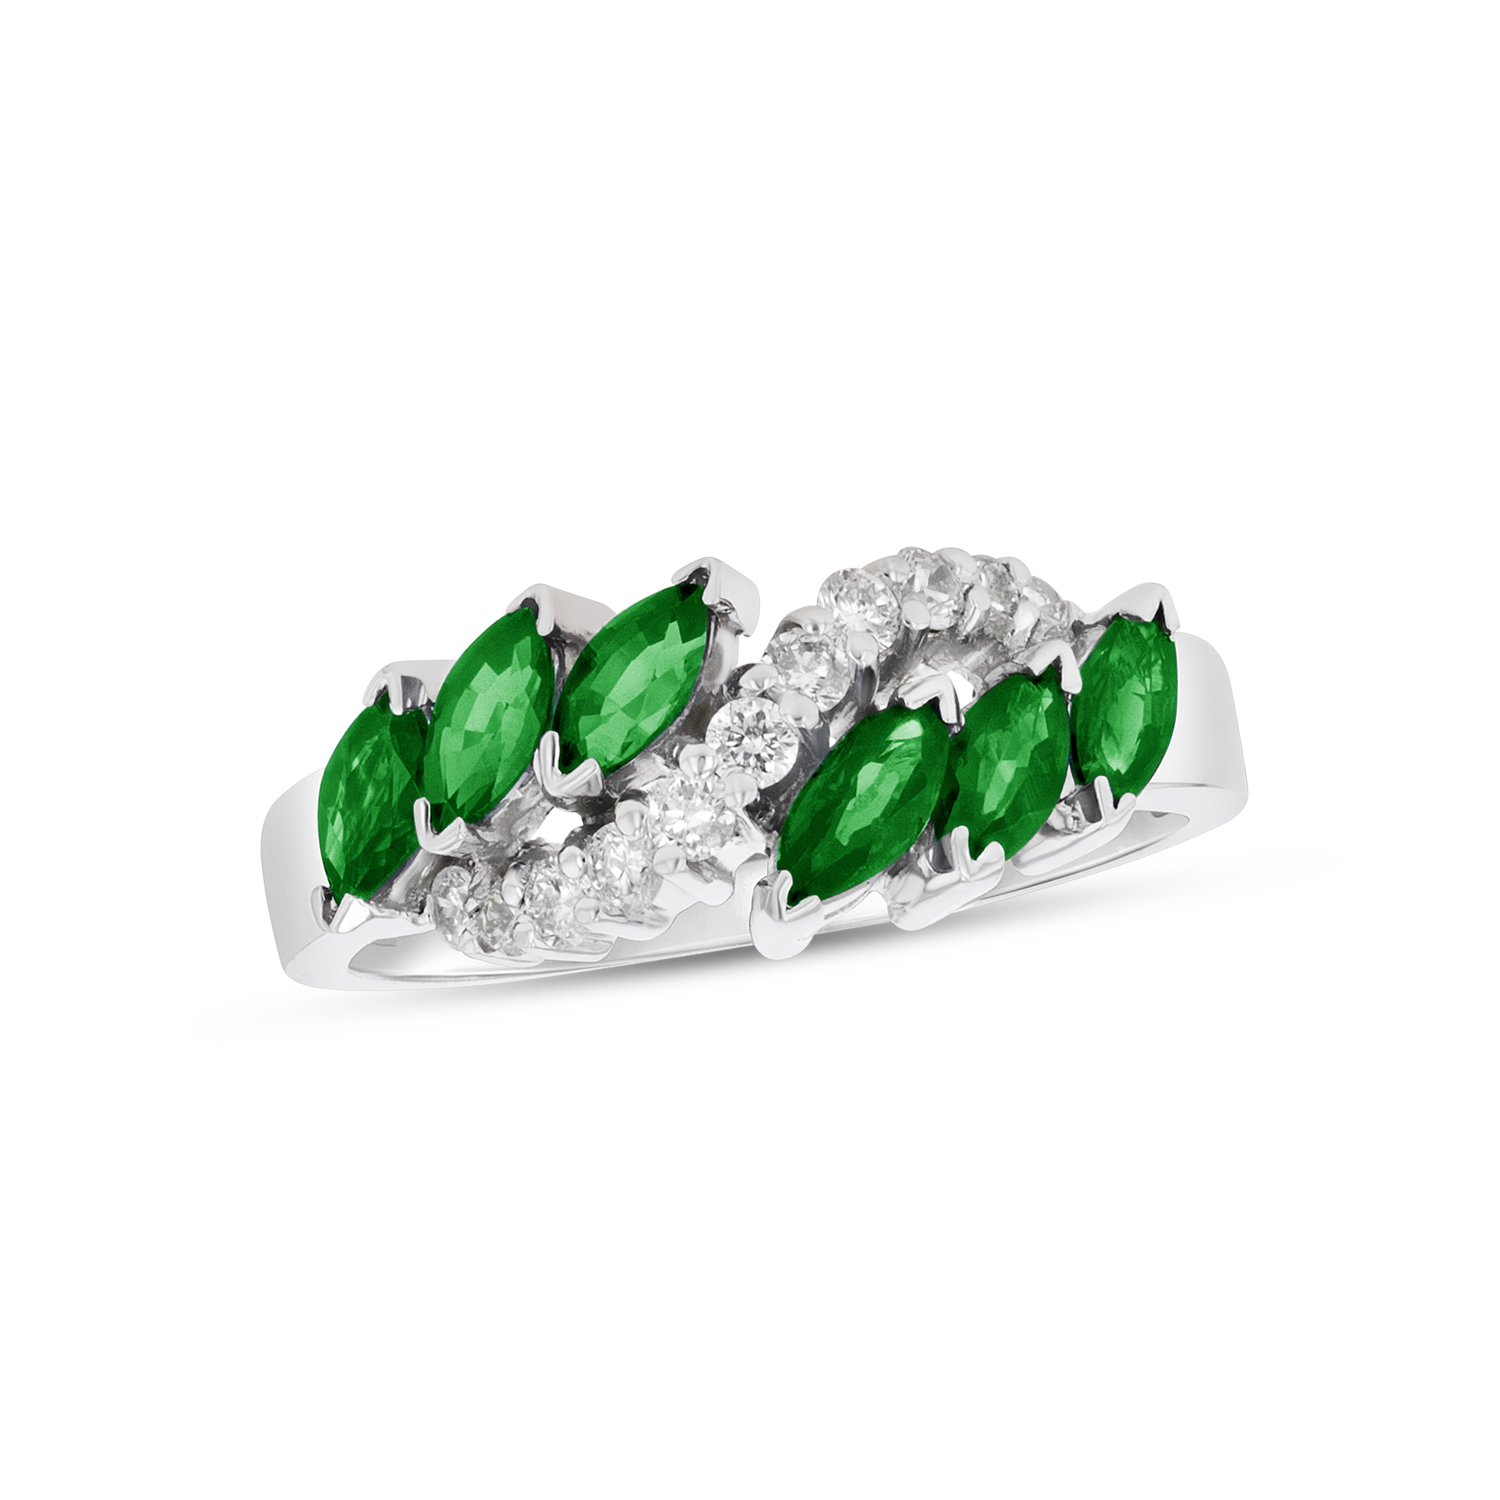 View 1.15ctw Diamond and Emerald Fashion Ring in 14k White Gold